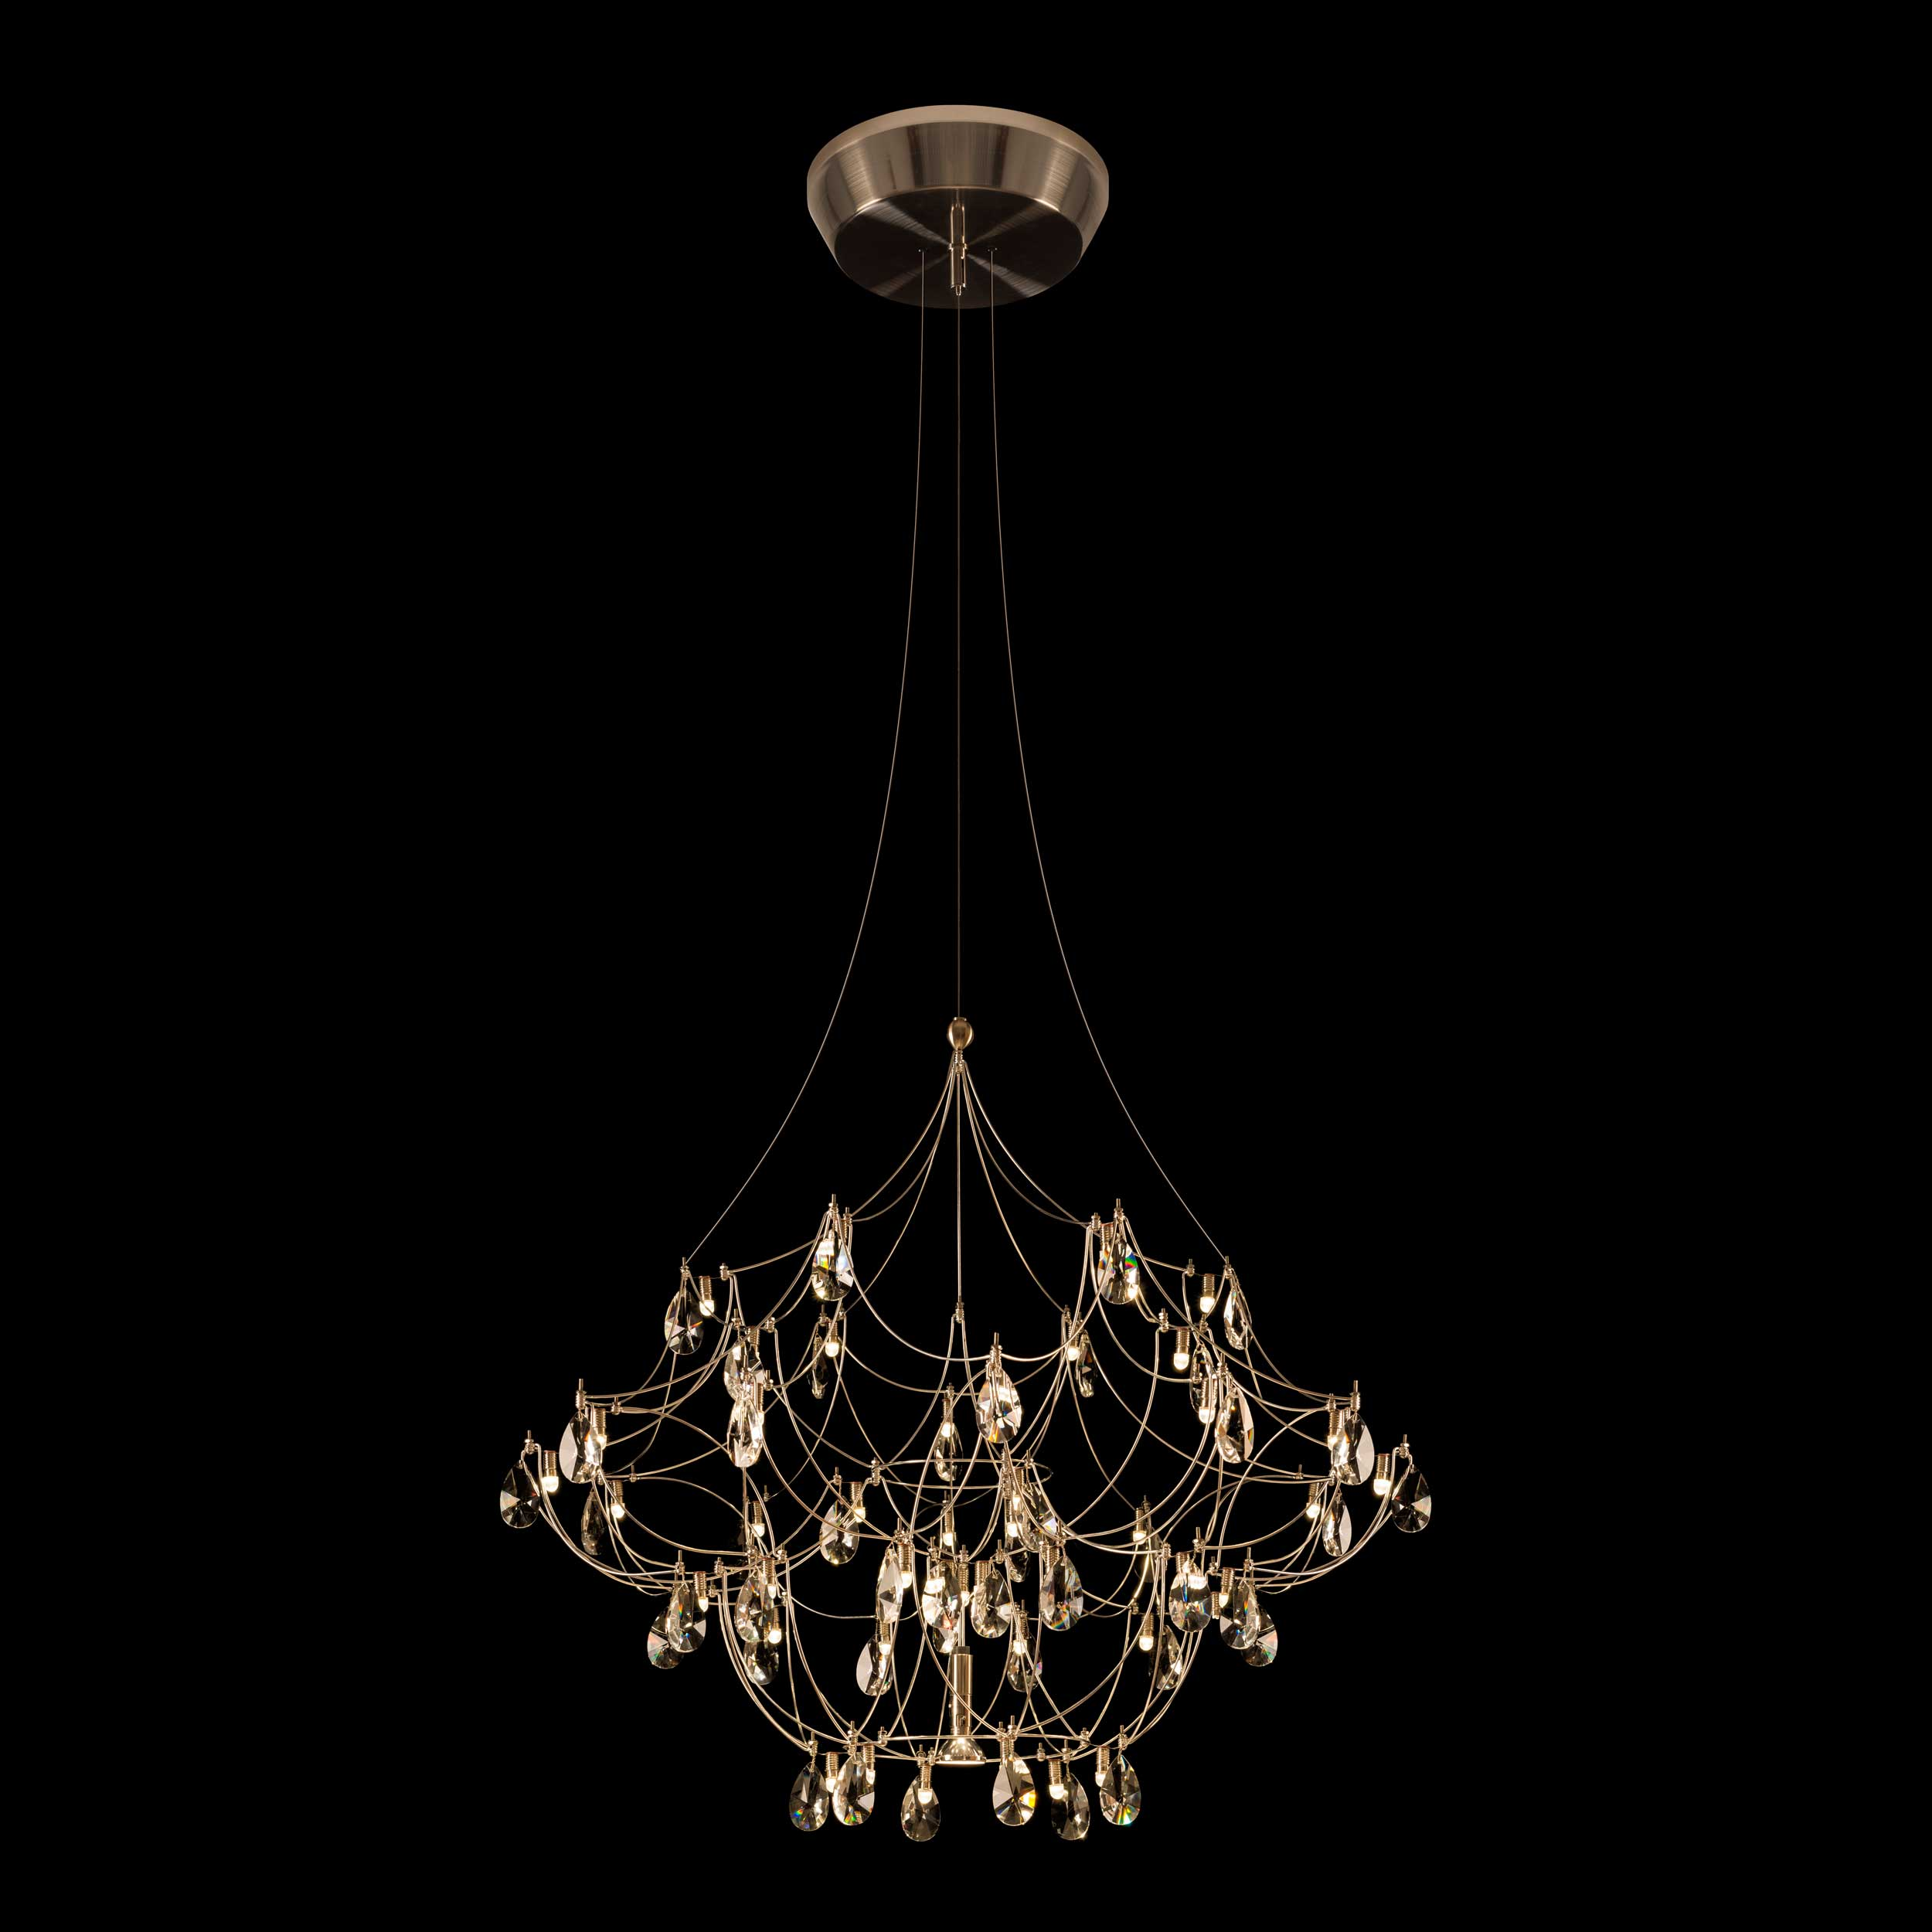 Galaxy chandelier with downlight by pureedge lighting cryga24 12 crystal galaxy chandelier with downlight by pureedge lighting cryga24 12 k1 dl sn aloadofball Choice Image